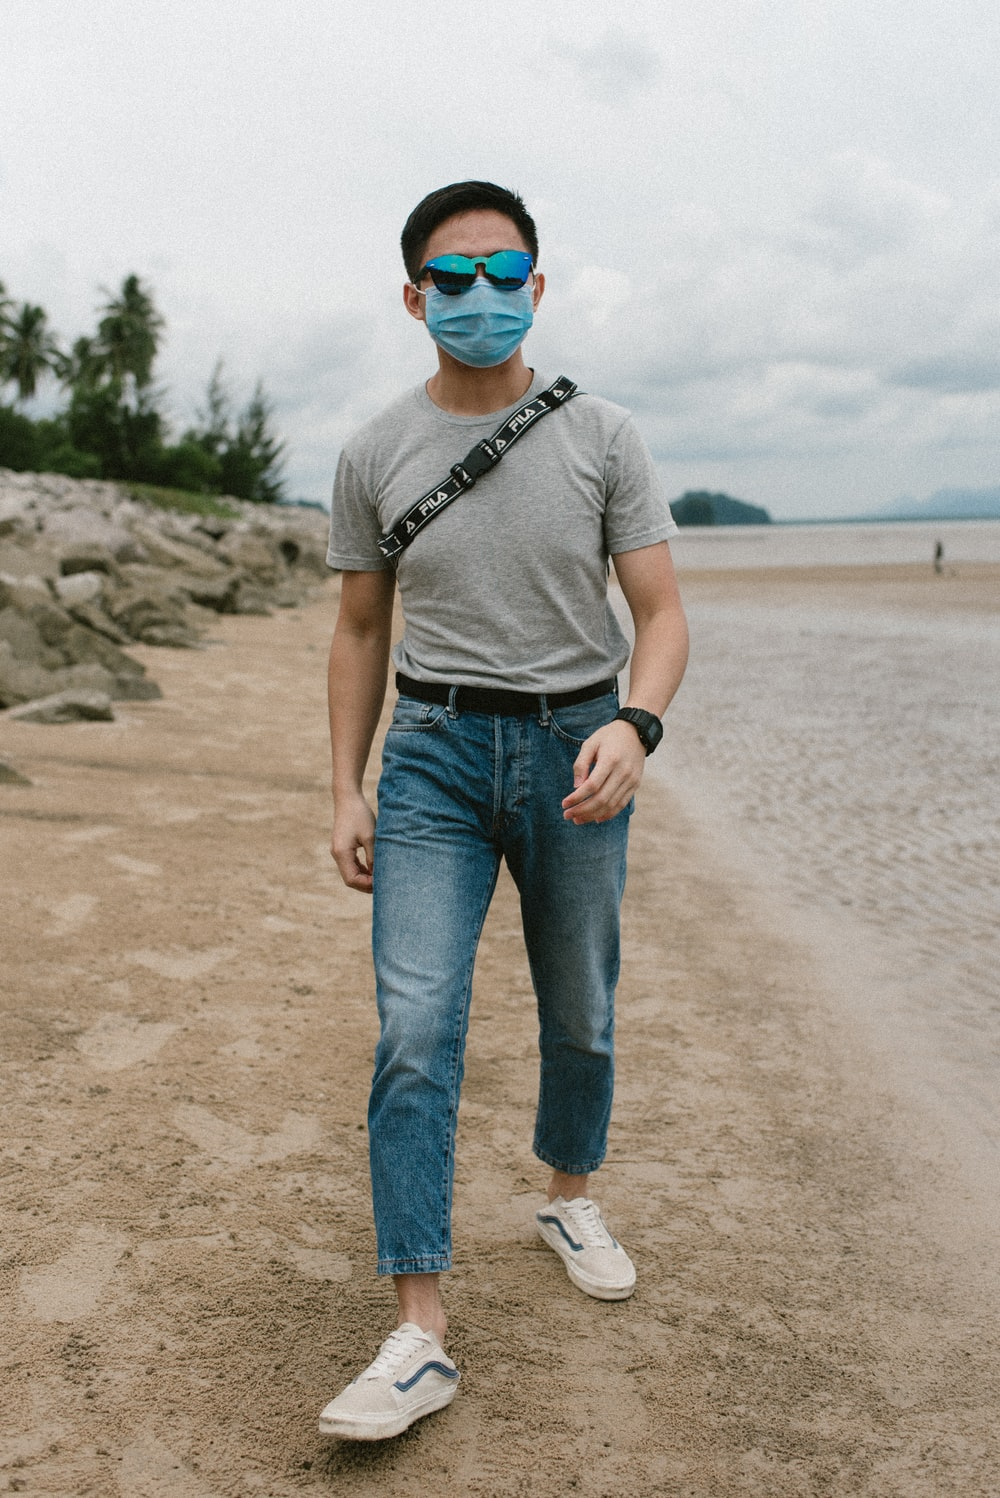 man in gray crew neck t-shirt and blue denim jeans standing on beach shore during